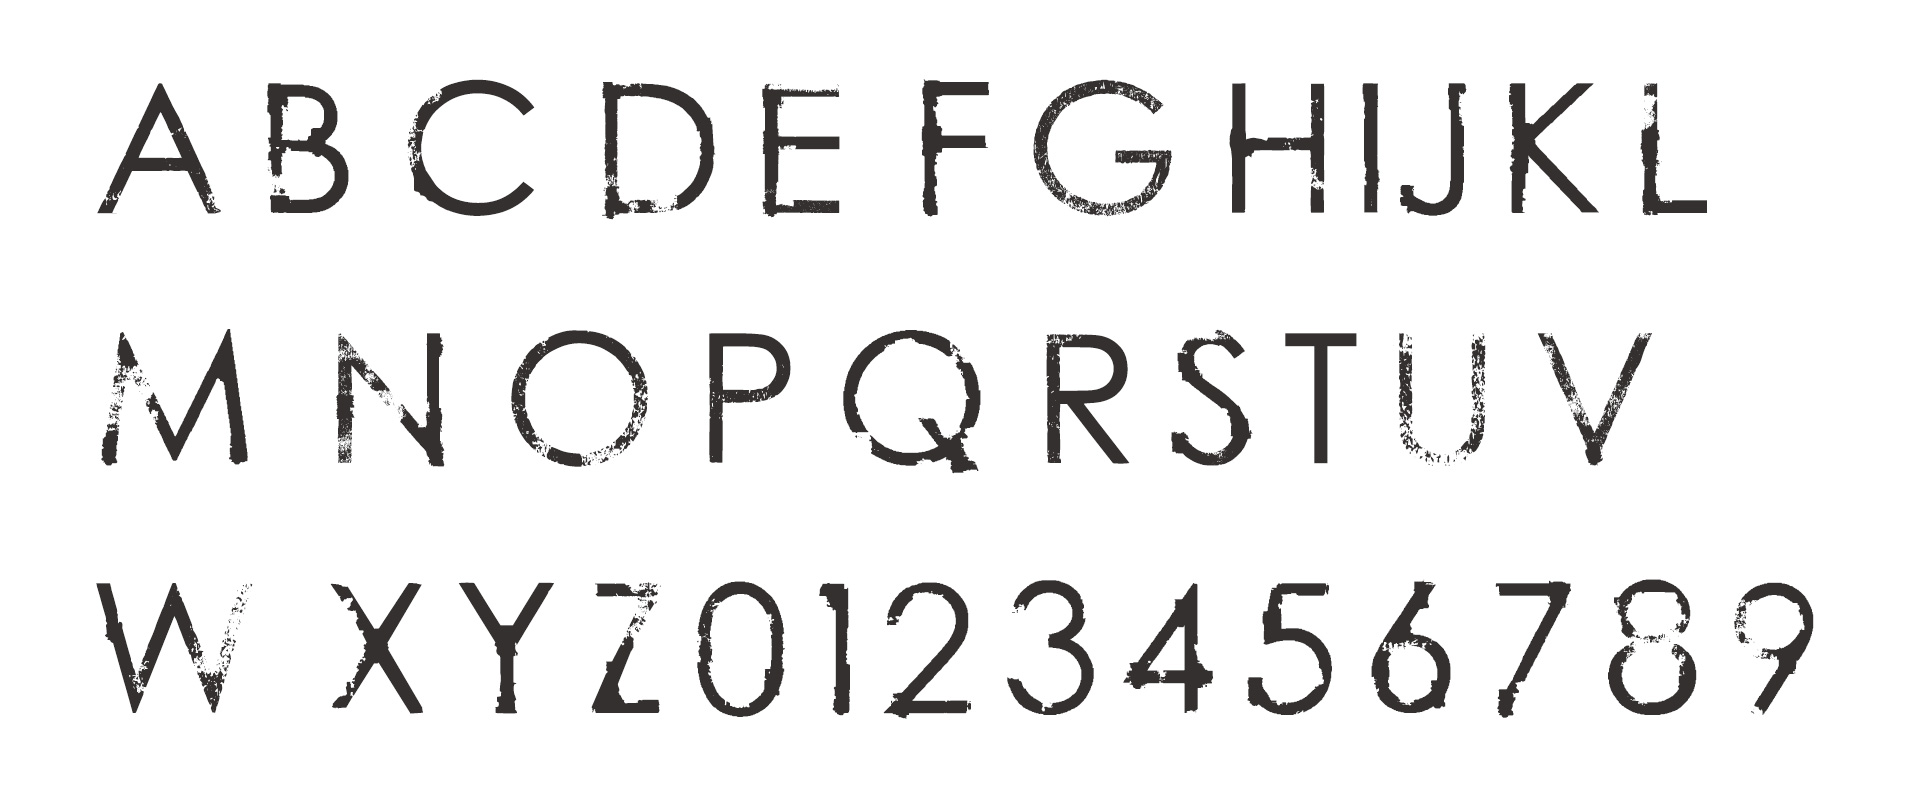 From The Source Font Design Alphabet Distressed Typography